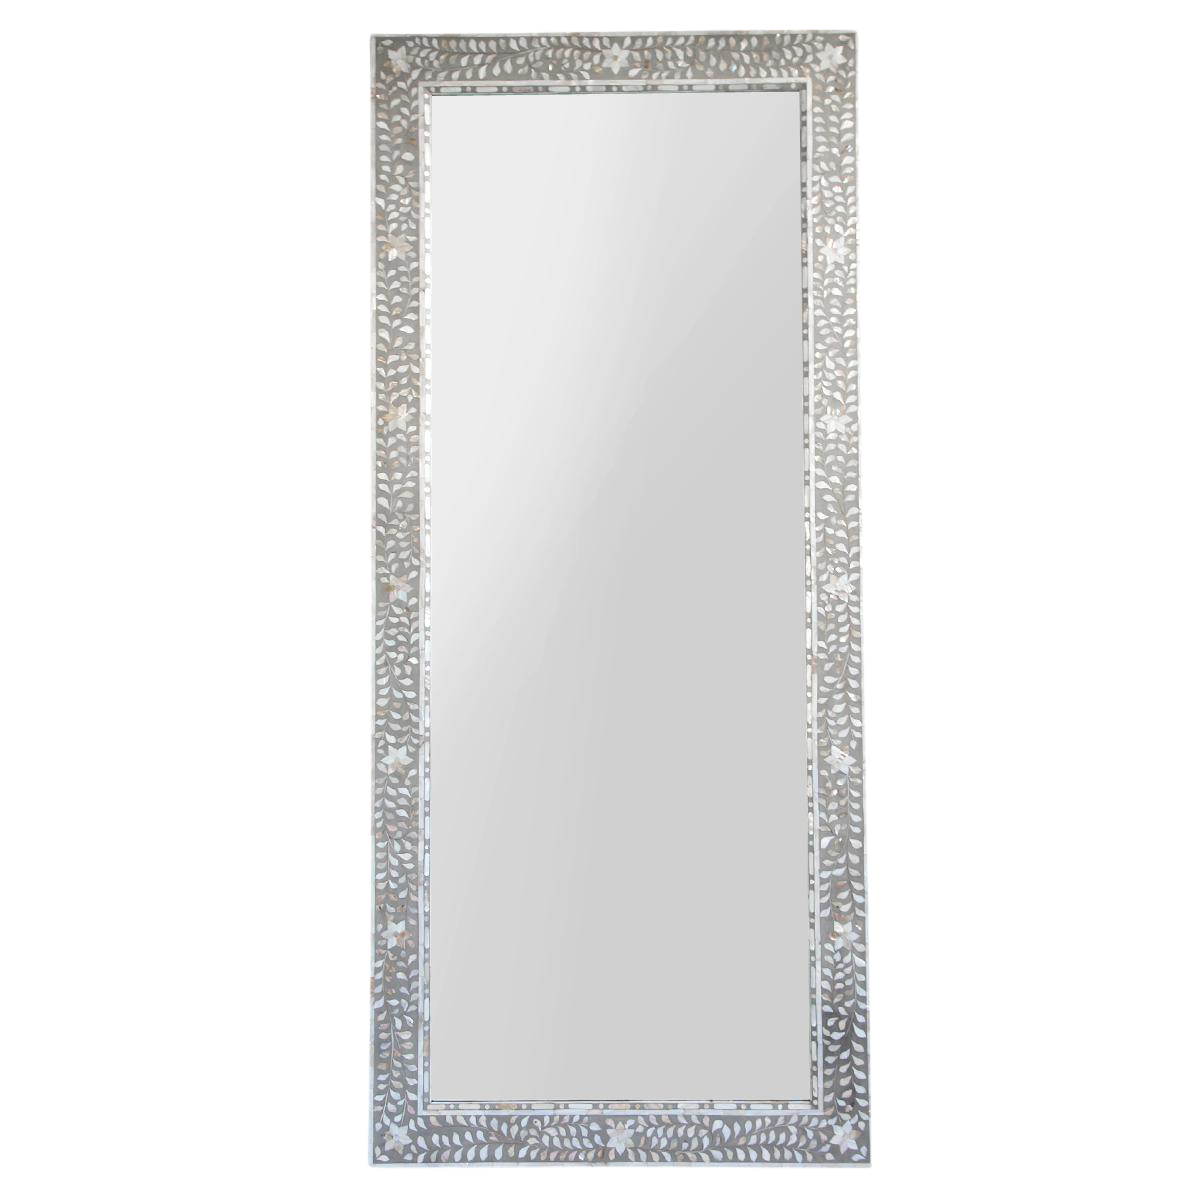 Inlaid Mother Of Pearl Full Length Mirror On Chairish Com Full